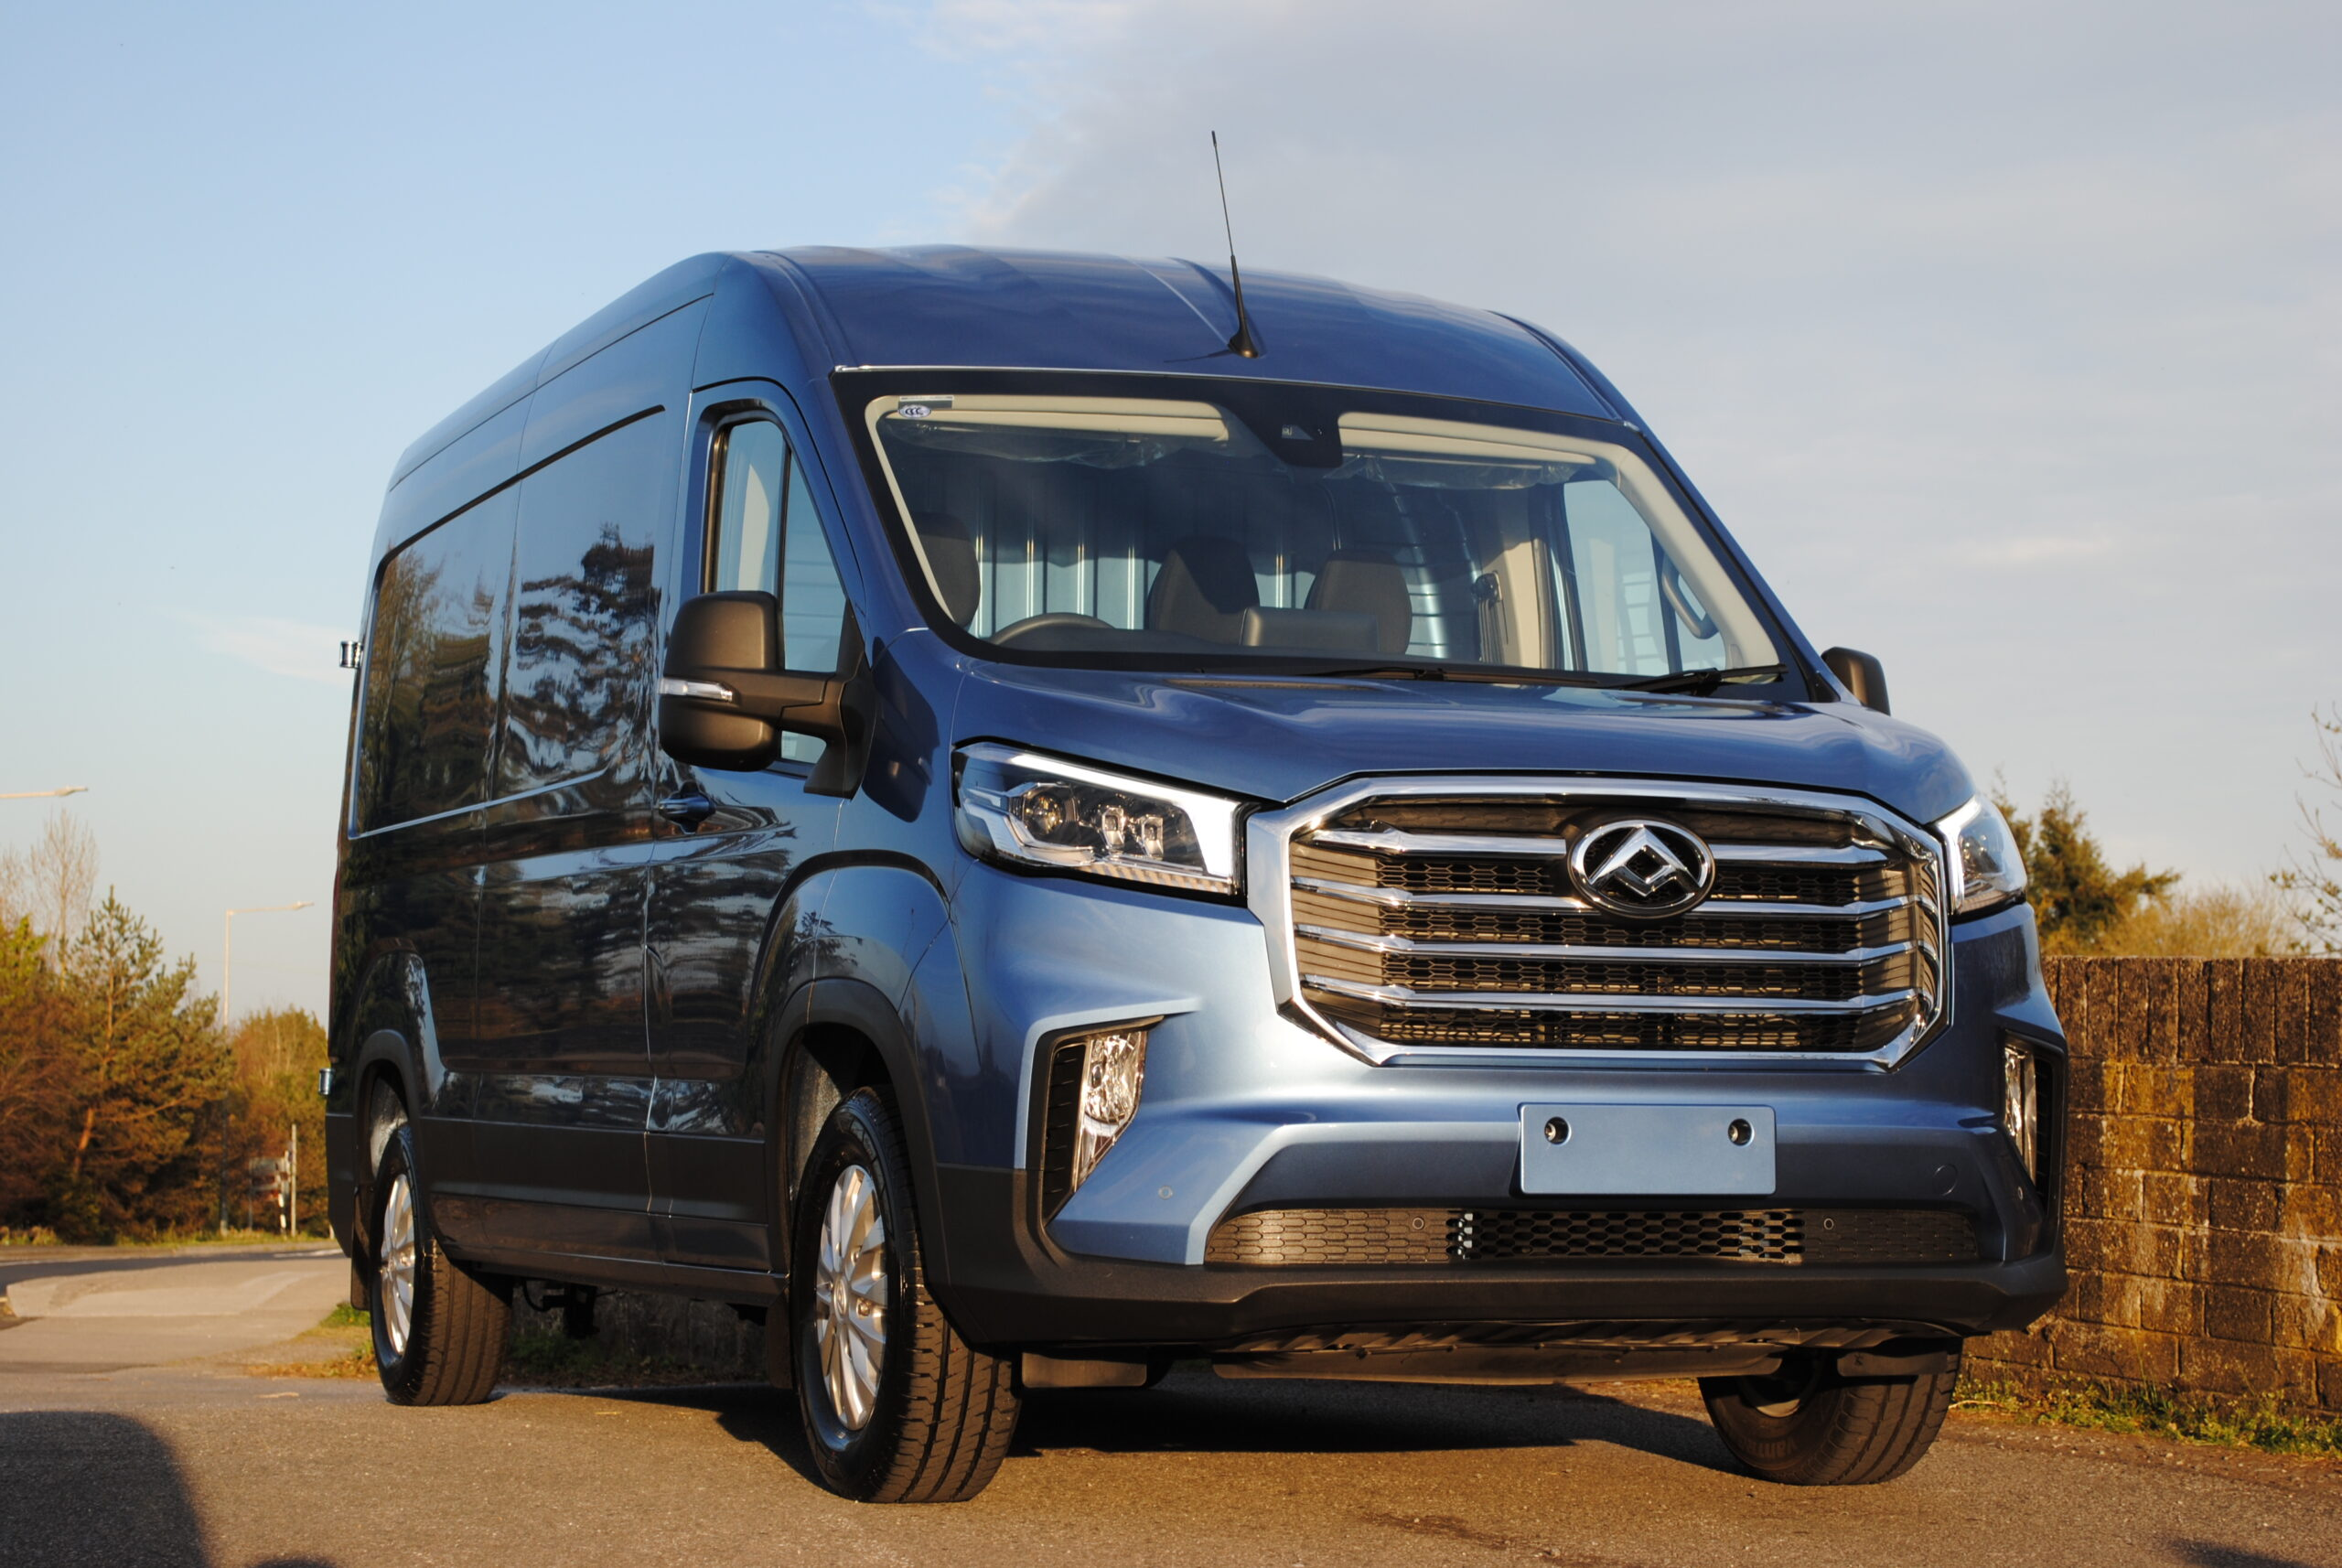 Maxus Deliver 9 - Luxury spec - front view